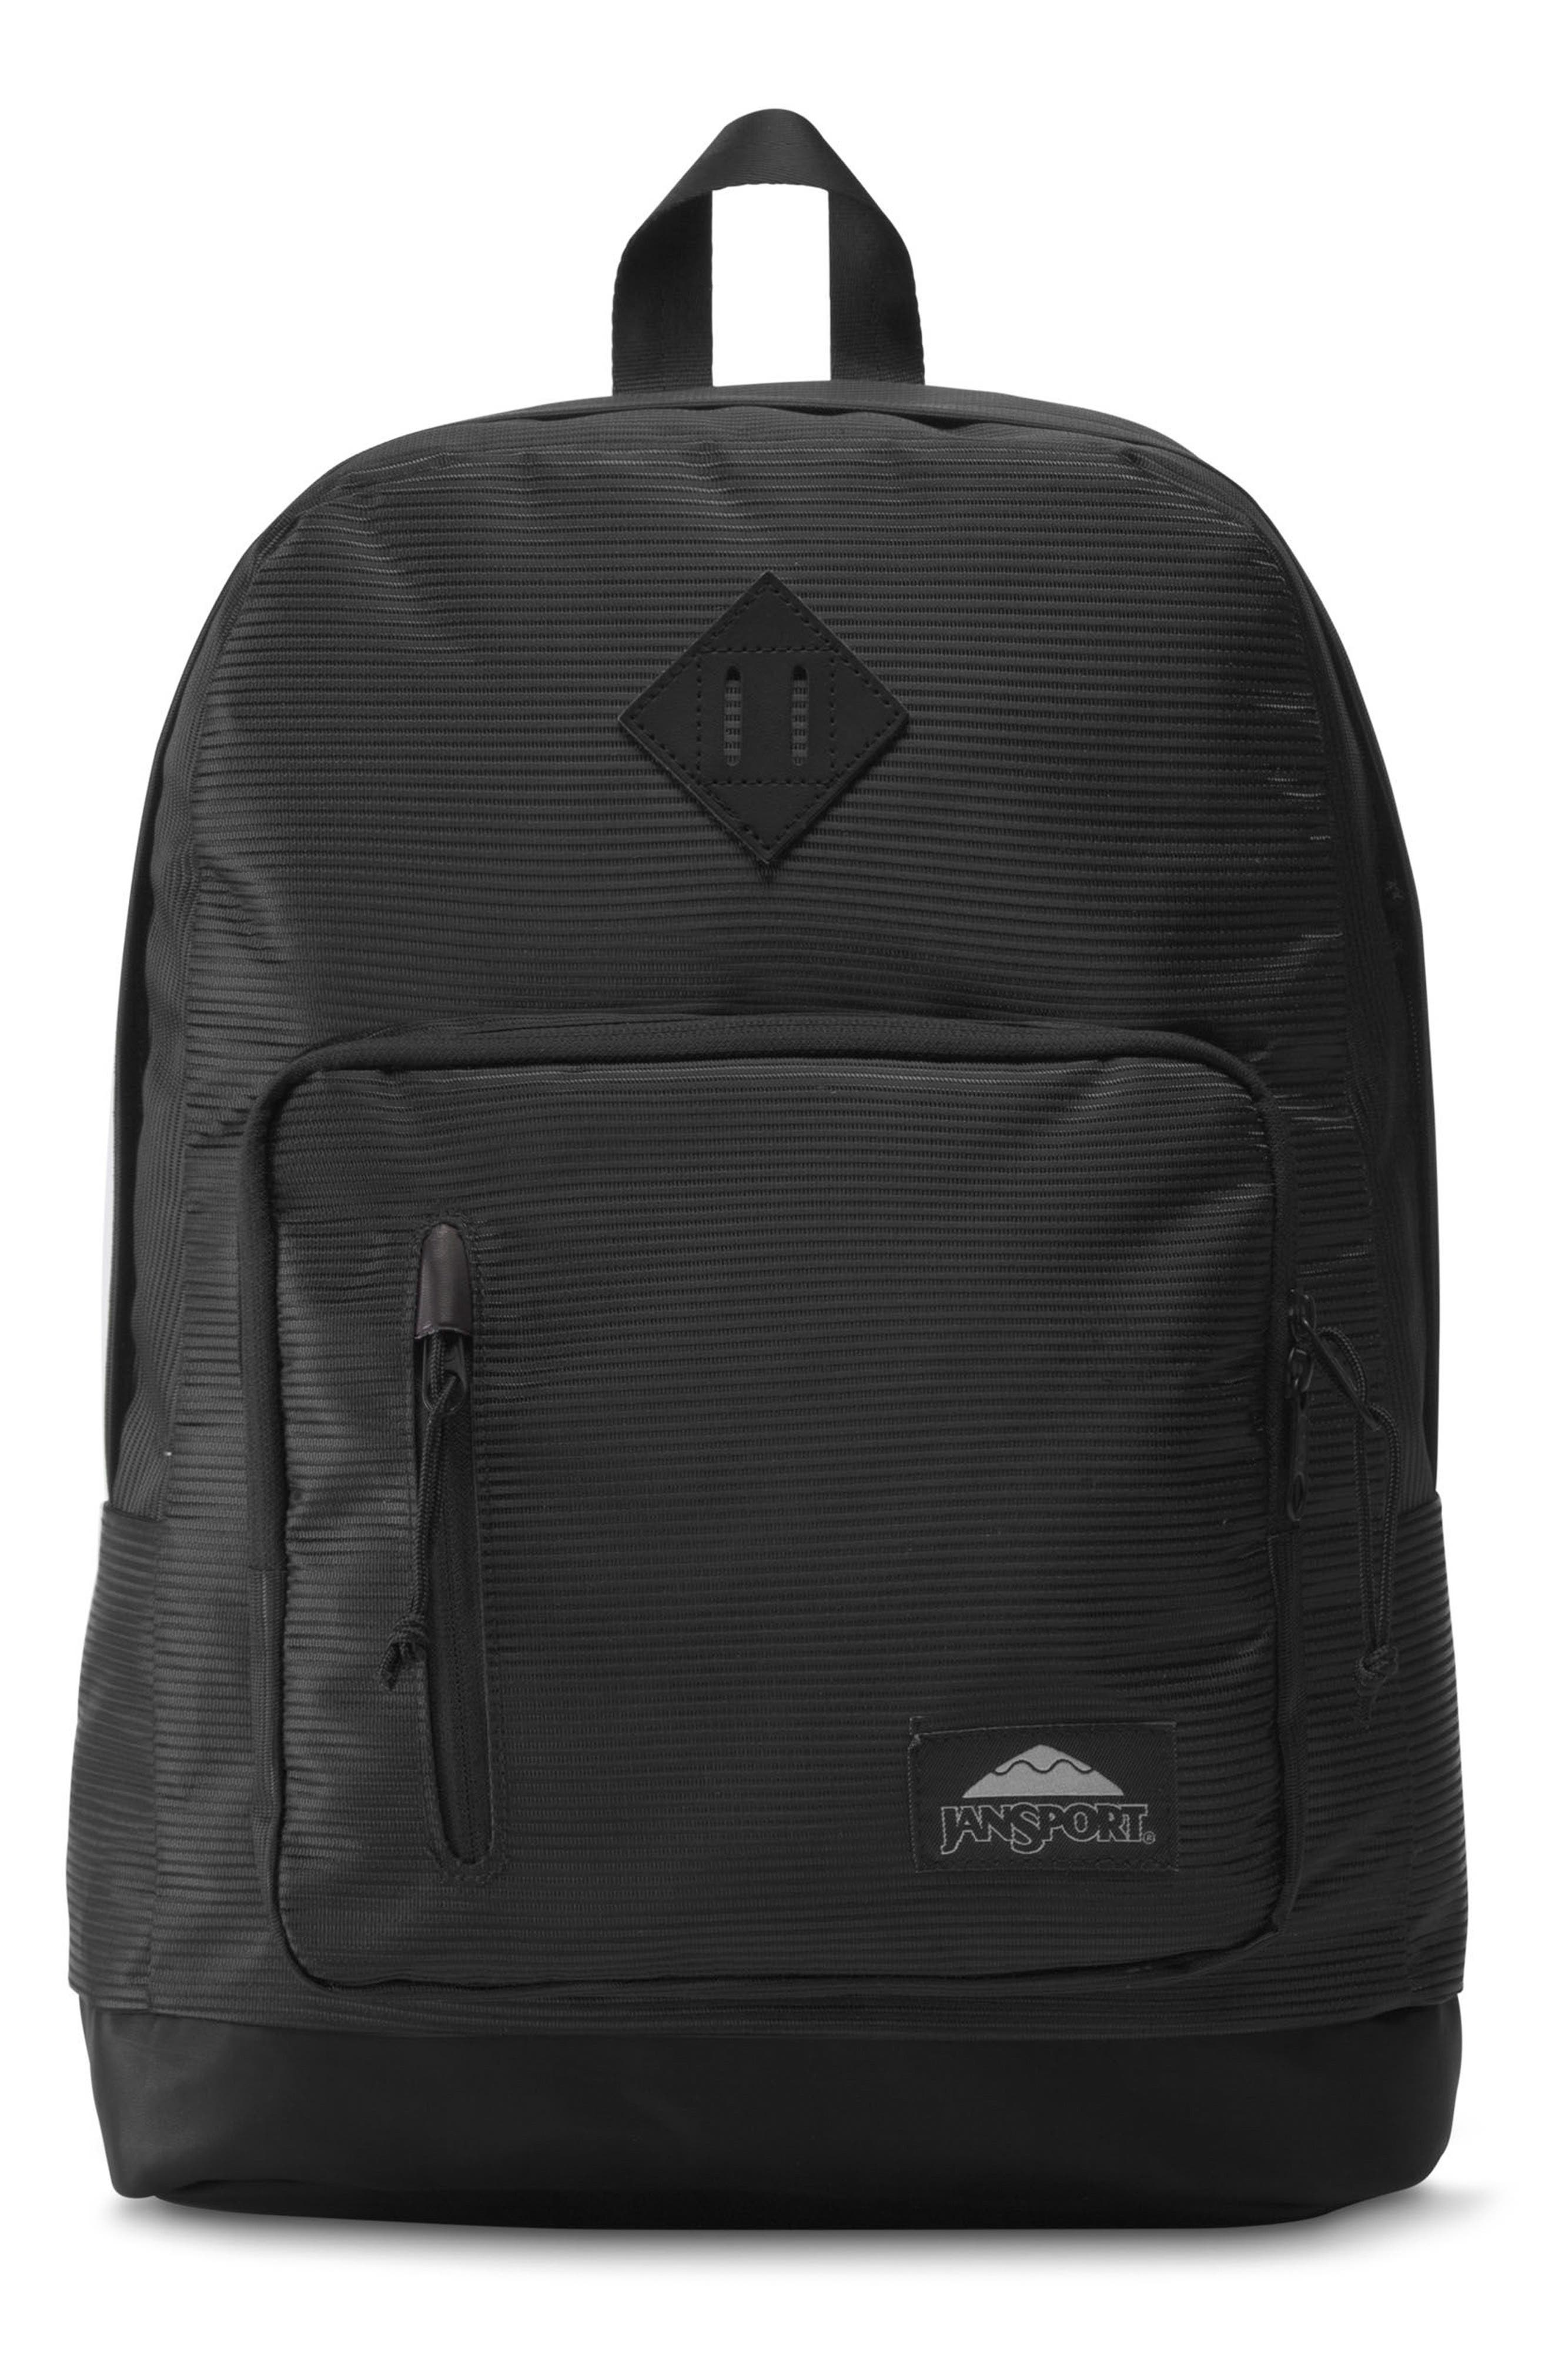 JANSPORT Axiom Backpack, Main, color, 001